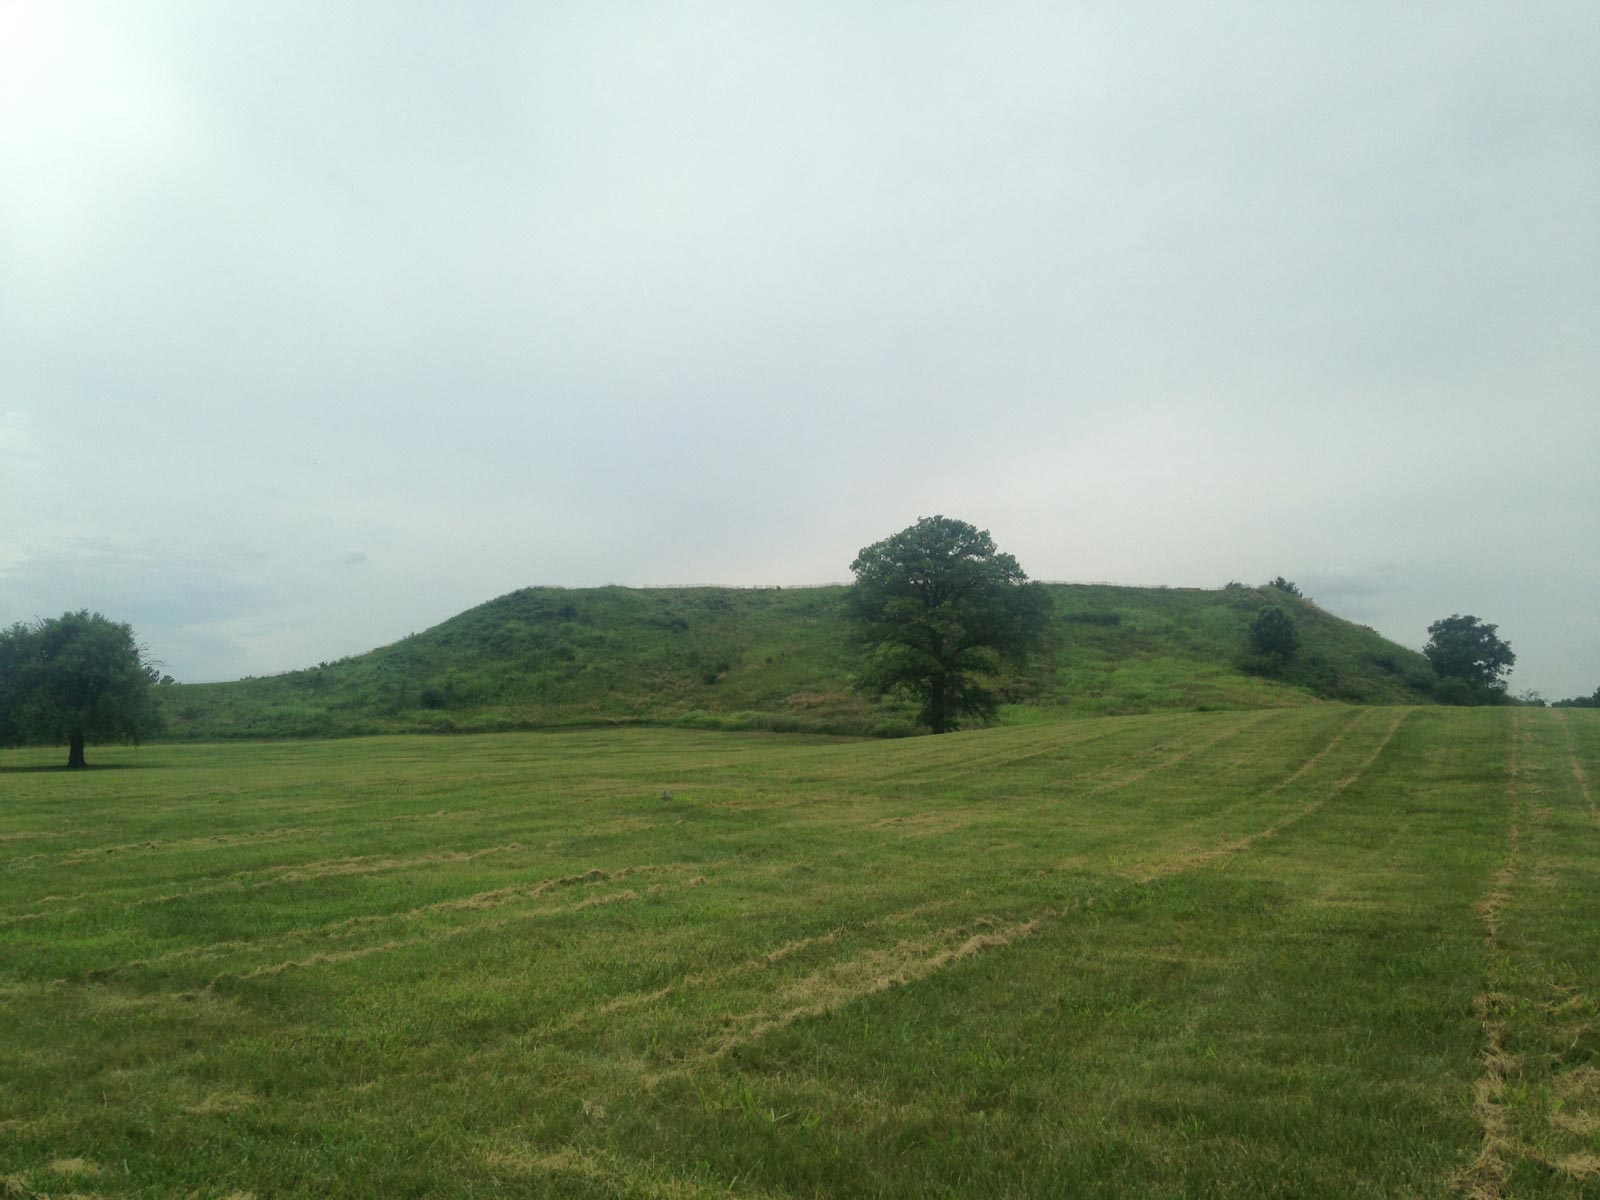 Cahokia Mounds State Historic Site, Collinsville, Illinois